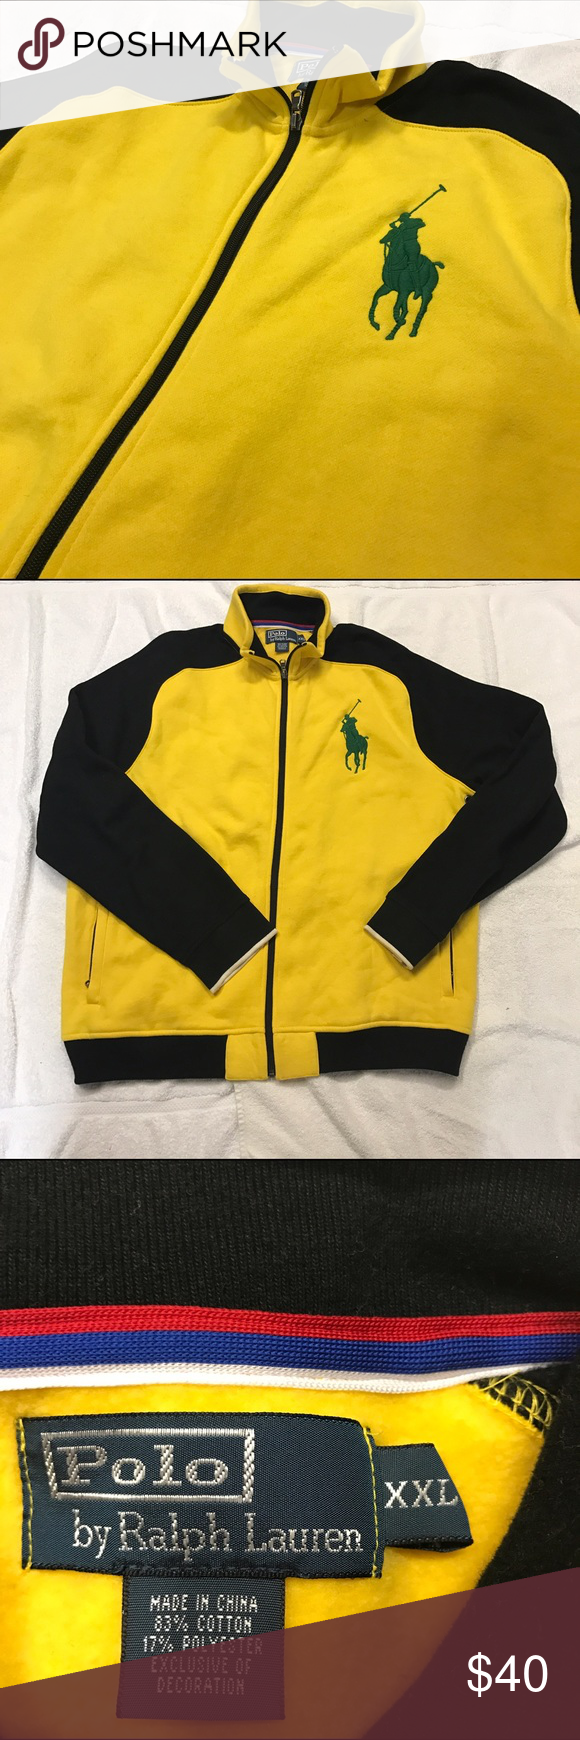 Ralph lauren polo fleece jacket pinterest polos yellow black